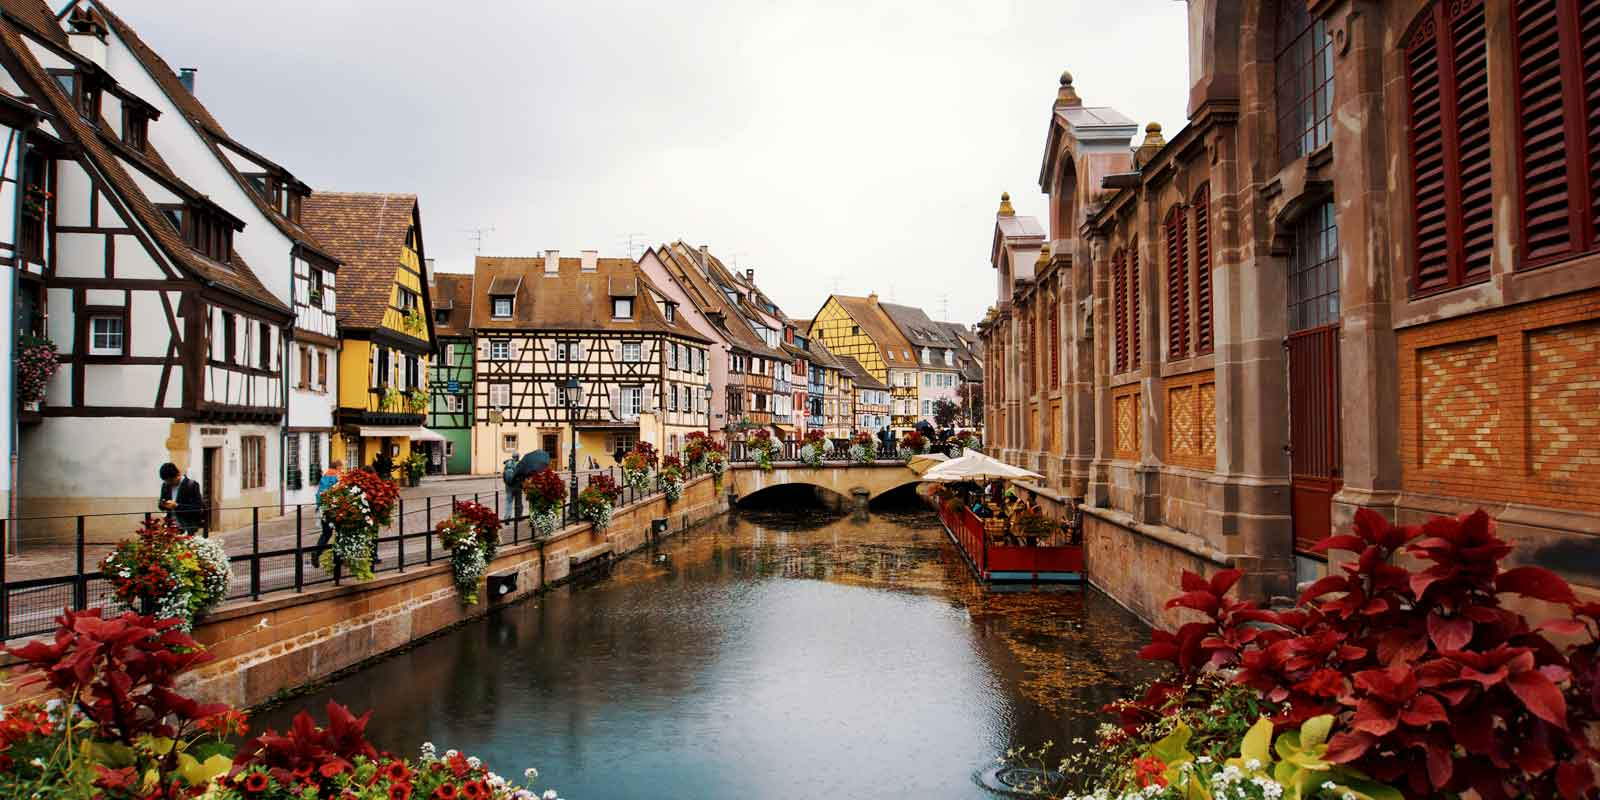 Landscape view of Colmar, France and its colorful fairytale like buildings.